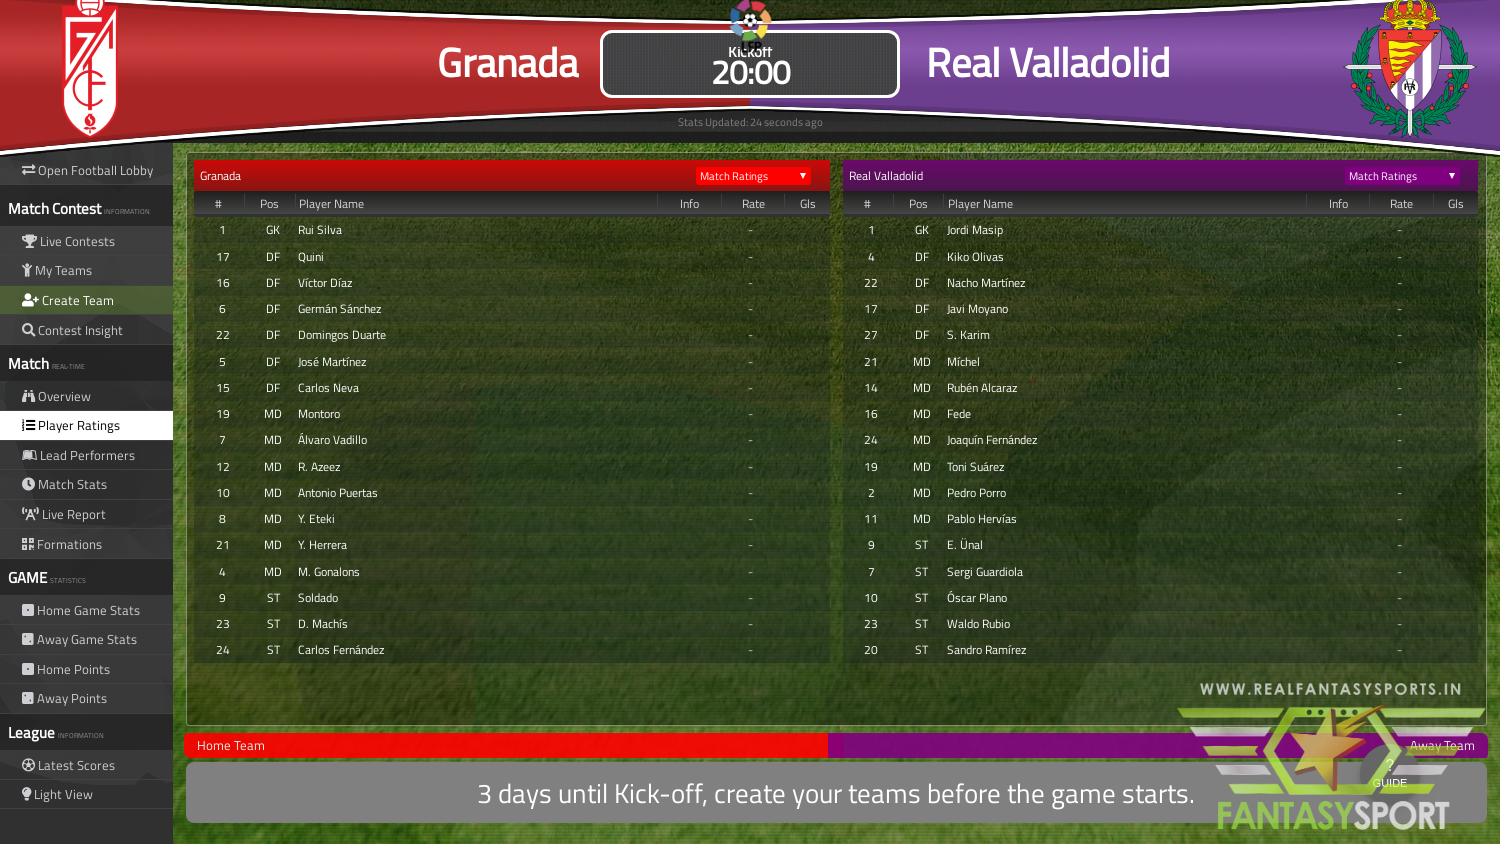 Fantasy Football Granada Vs Real Valladolid 15th February 2020